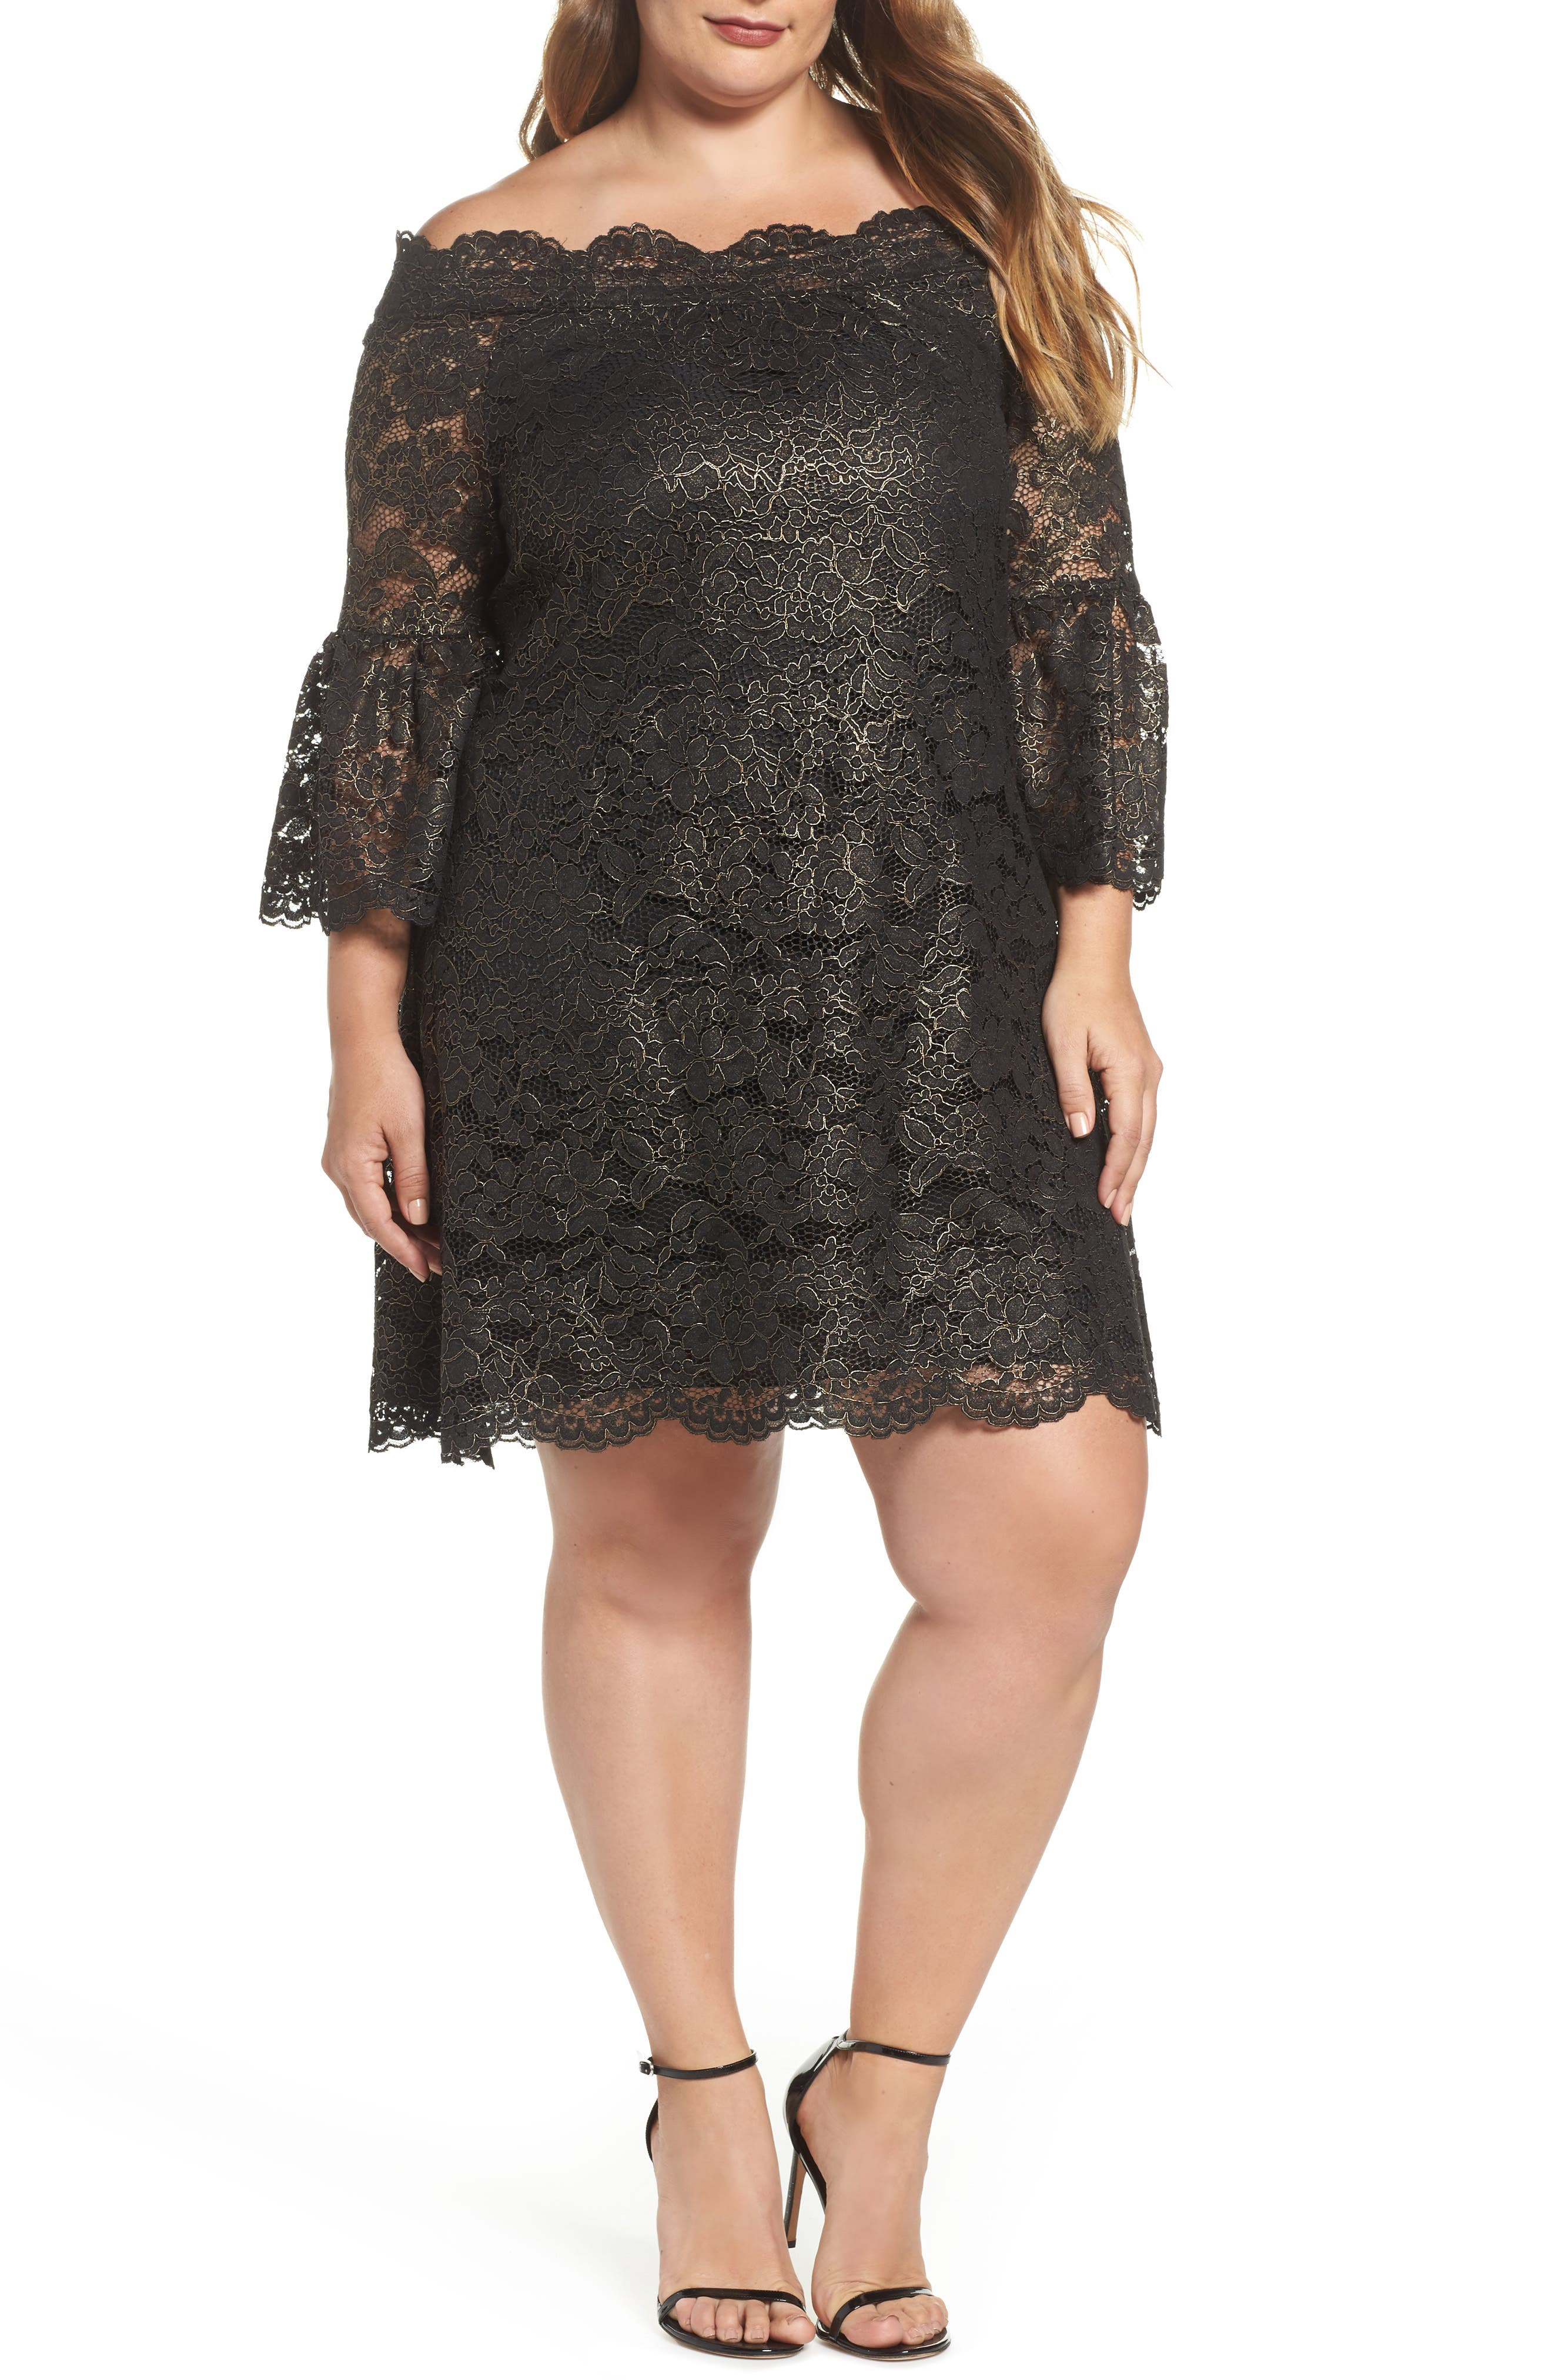 Alternate Image 1 Selected - ELVI Off the Shoulder Black Gold Lace Dress (Plus Size)